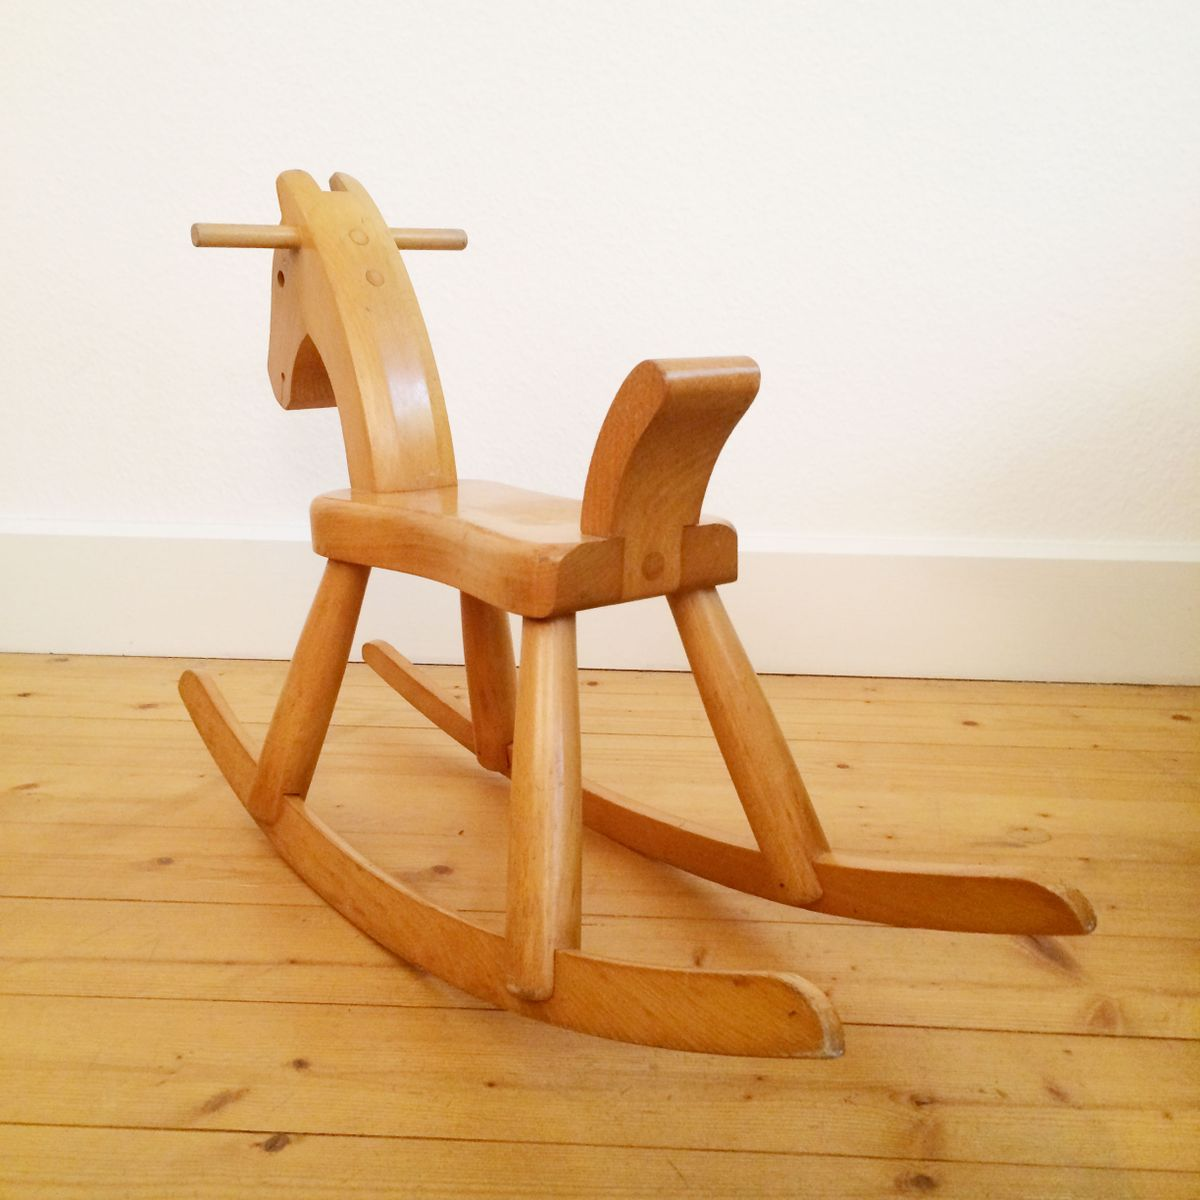 Vintage wooden rocking horse by kay bojesen for sale at pamono for Vintage horseshoes for sale